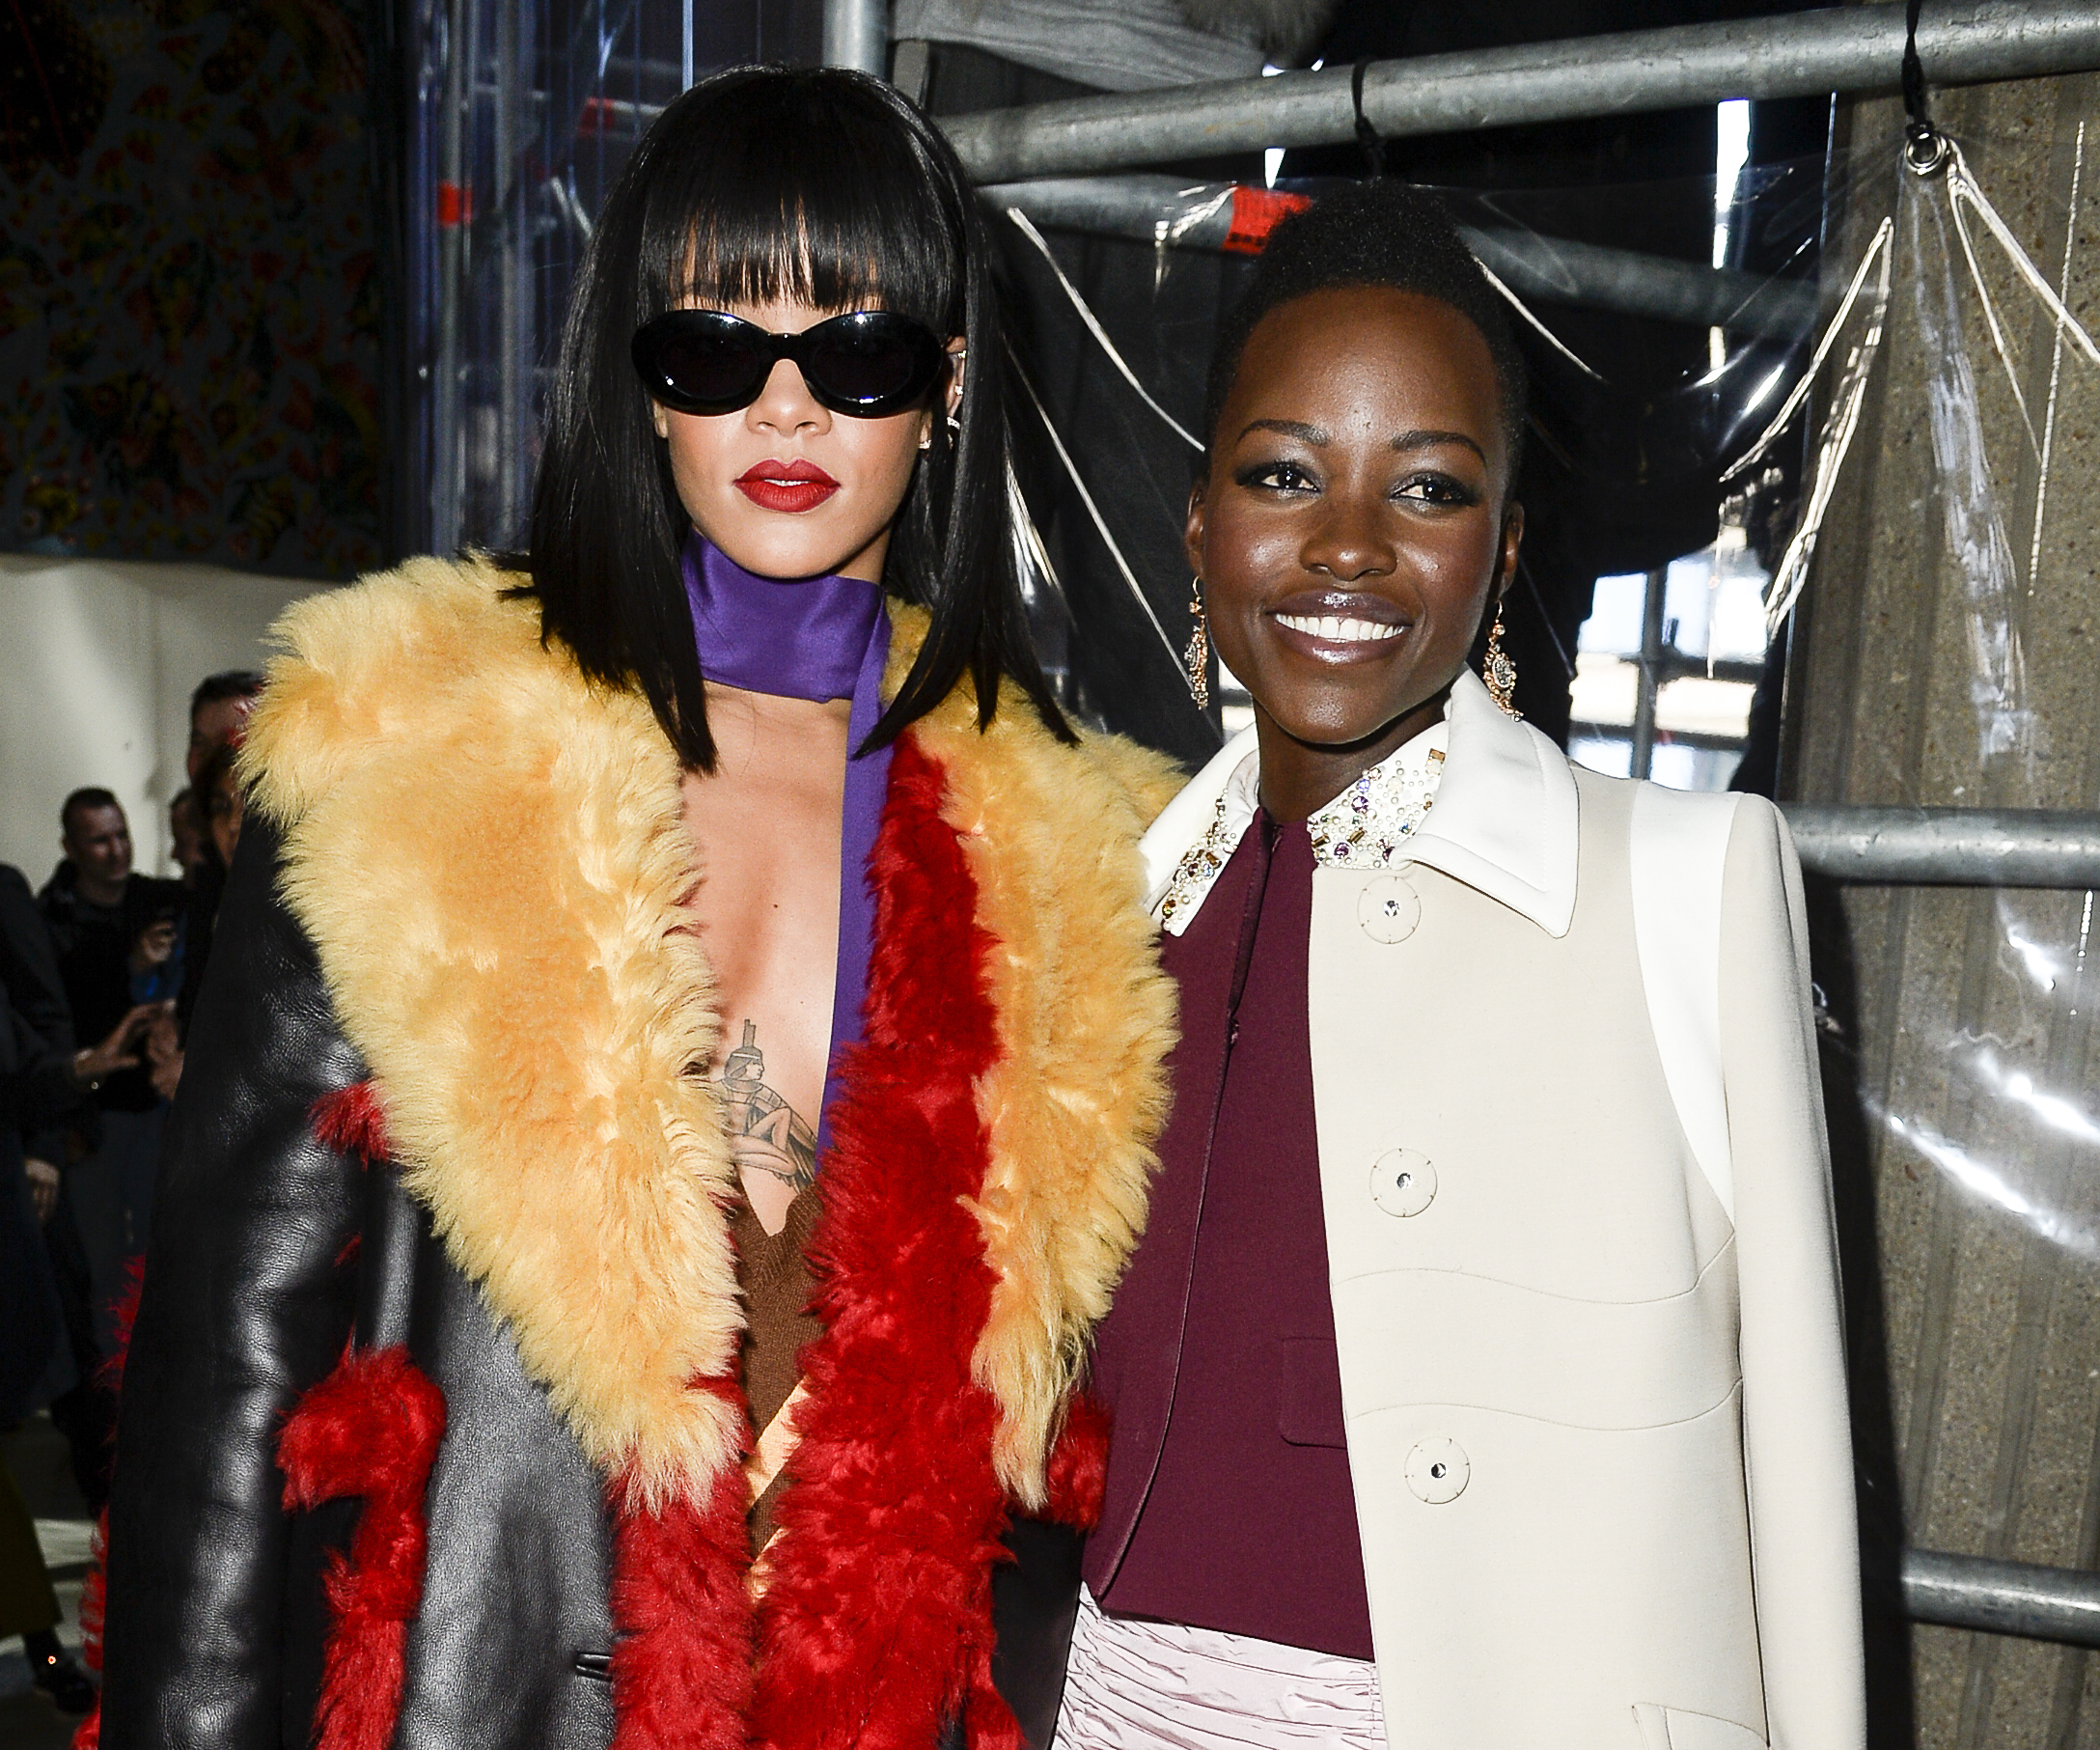 Netflix Green Lights Rihanna & Lupita Nyong'o Film Based on Twitter Meme